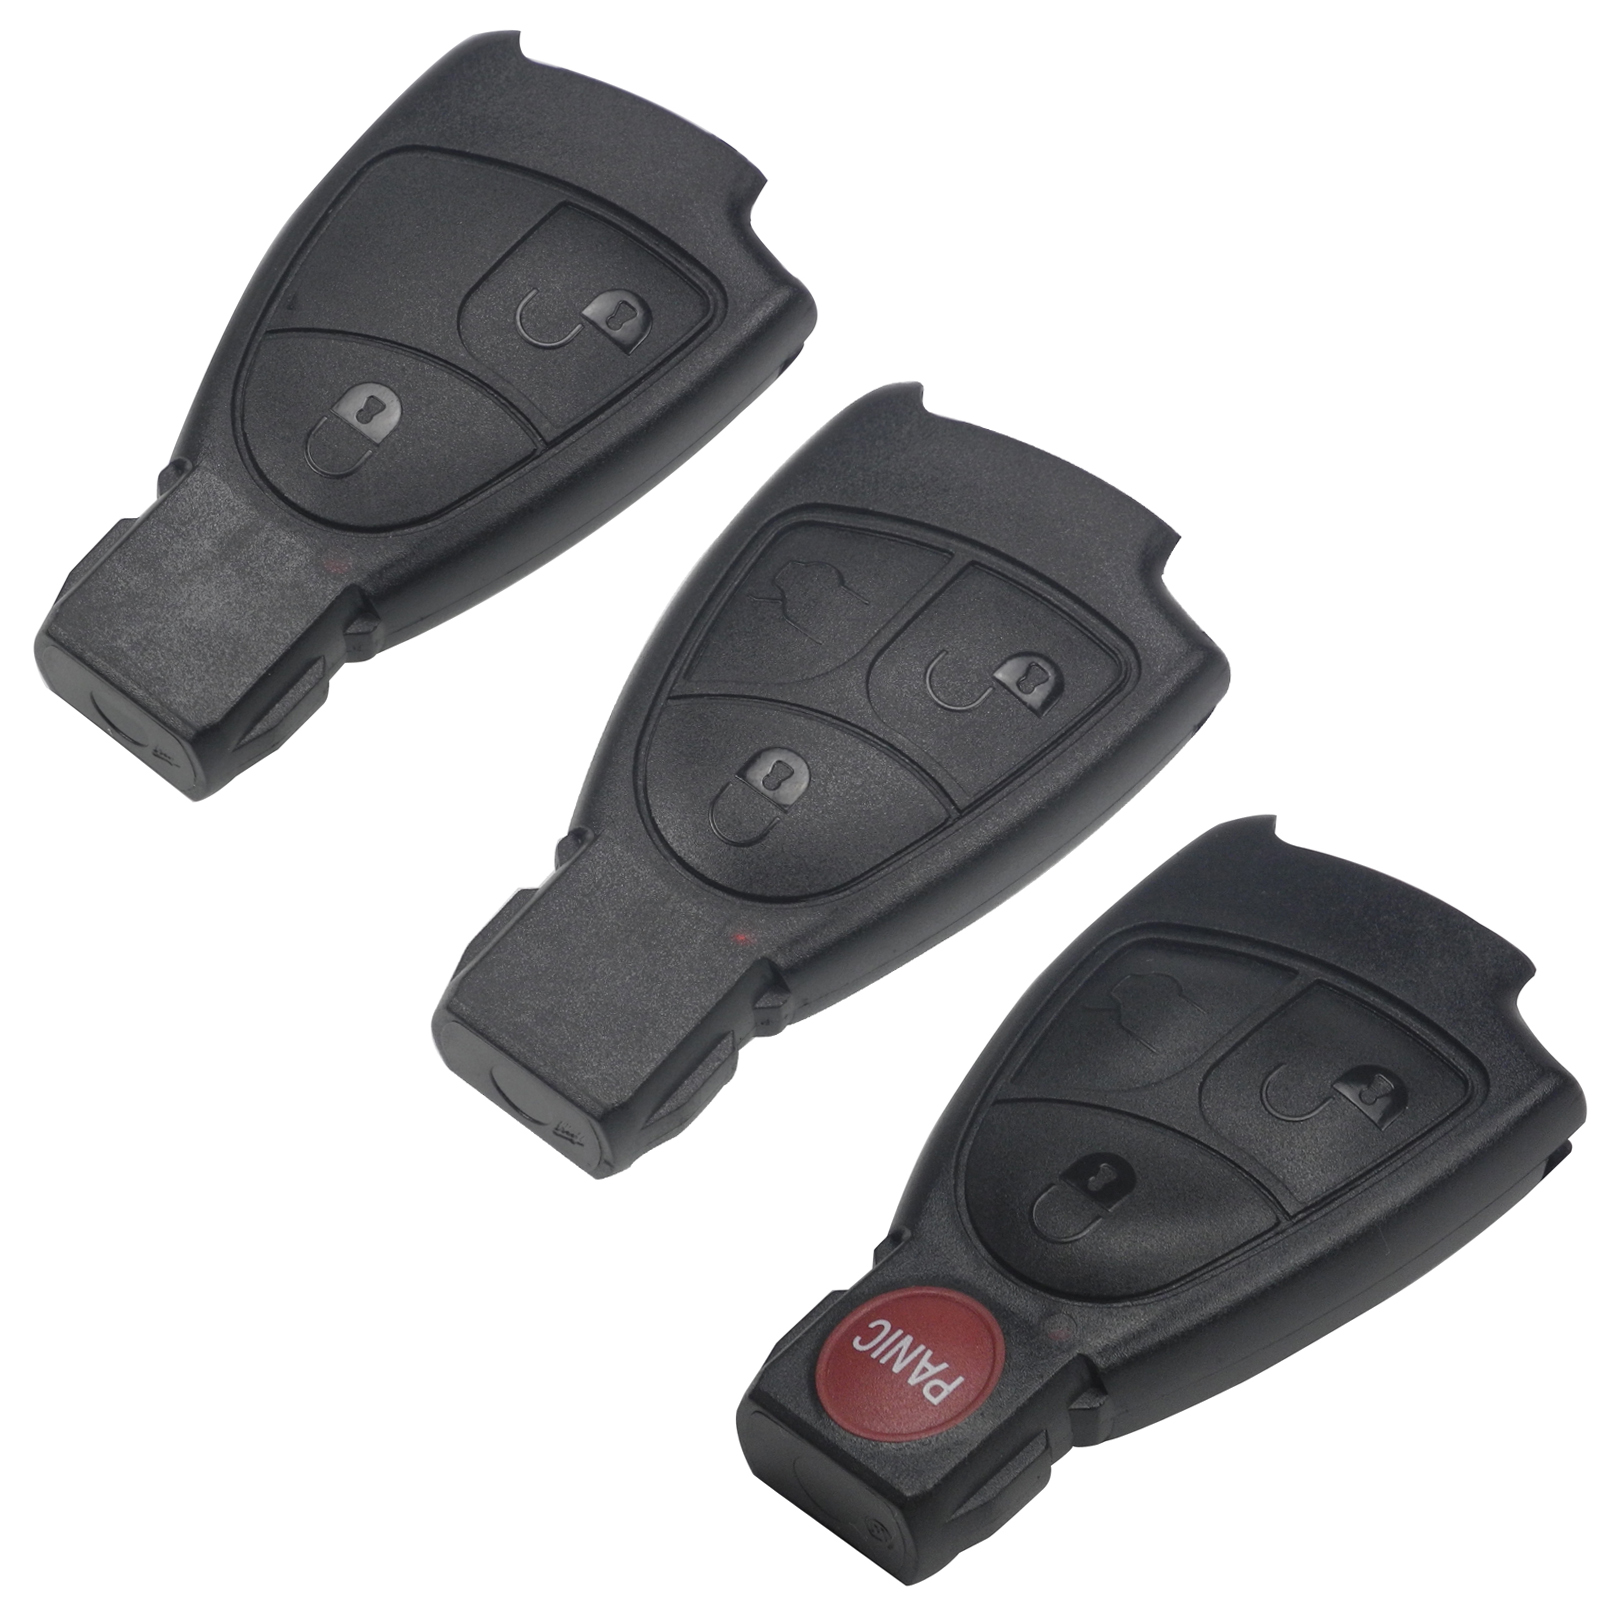 maizhi 2/3/4 Buttons Replacement Smart Remote Car Key Shell Case FOB for Mercedes Benz B C E ML S CLK CL Smart Key No Logo centurion smart 1 smart 2 smart 4 replacement remote control